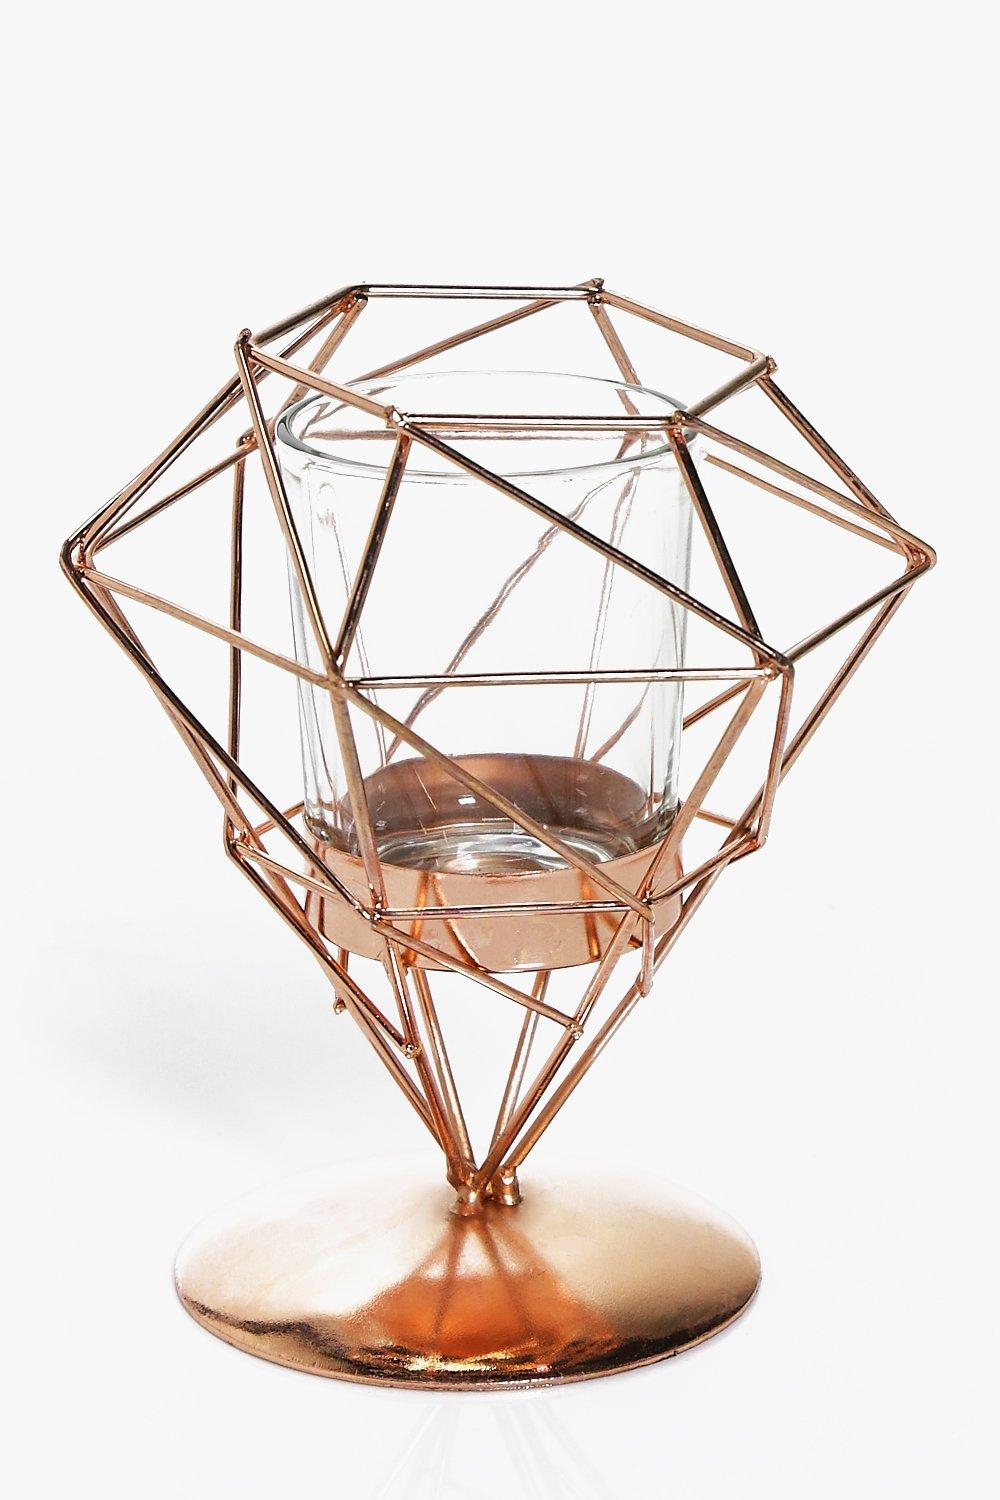 Copper Pyramid Candle Holder With Stand | Boohoo